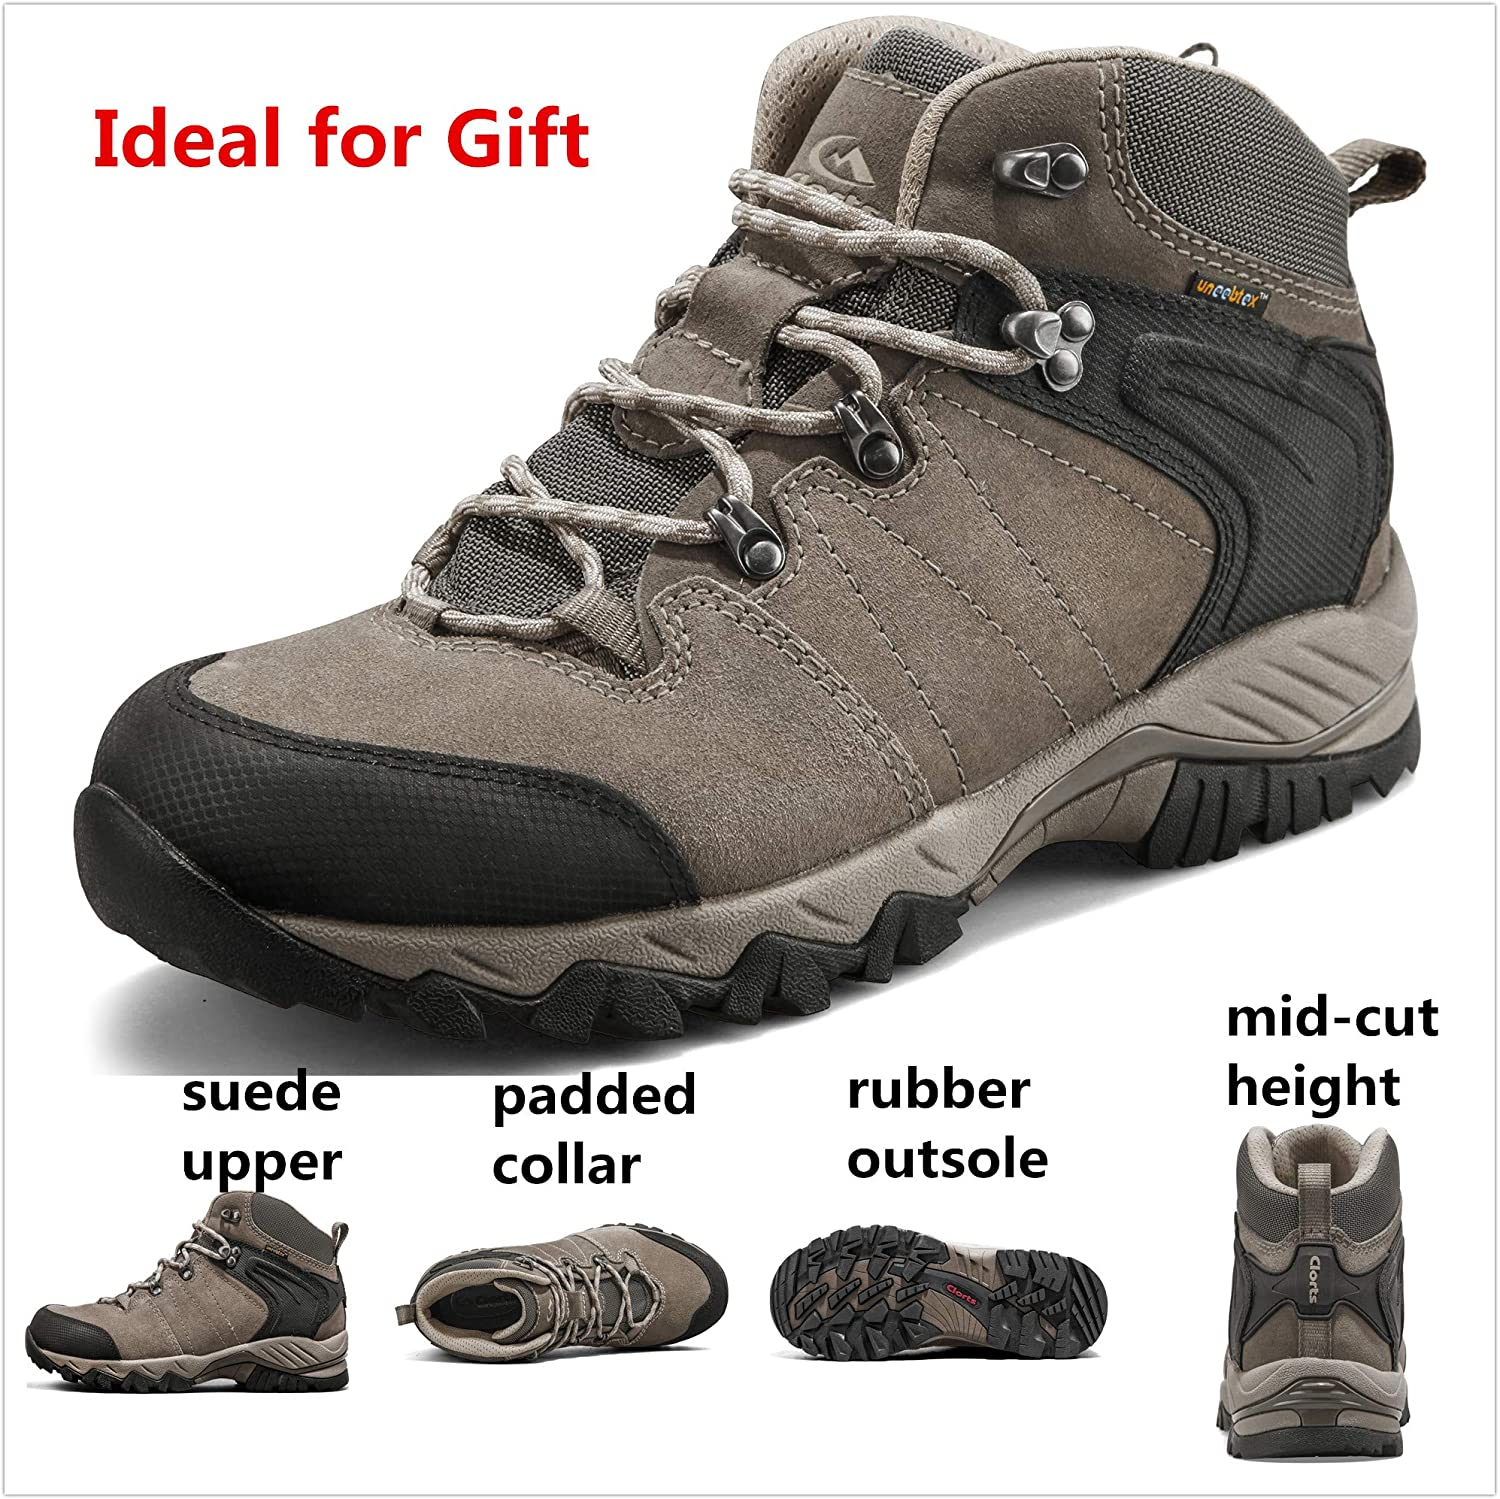 Clorts Womens Hiking Boots Waterproof Lightweight Hiker Leather Hiking Shoes Outdoor Backpacking Trekking Trail